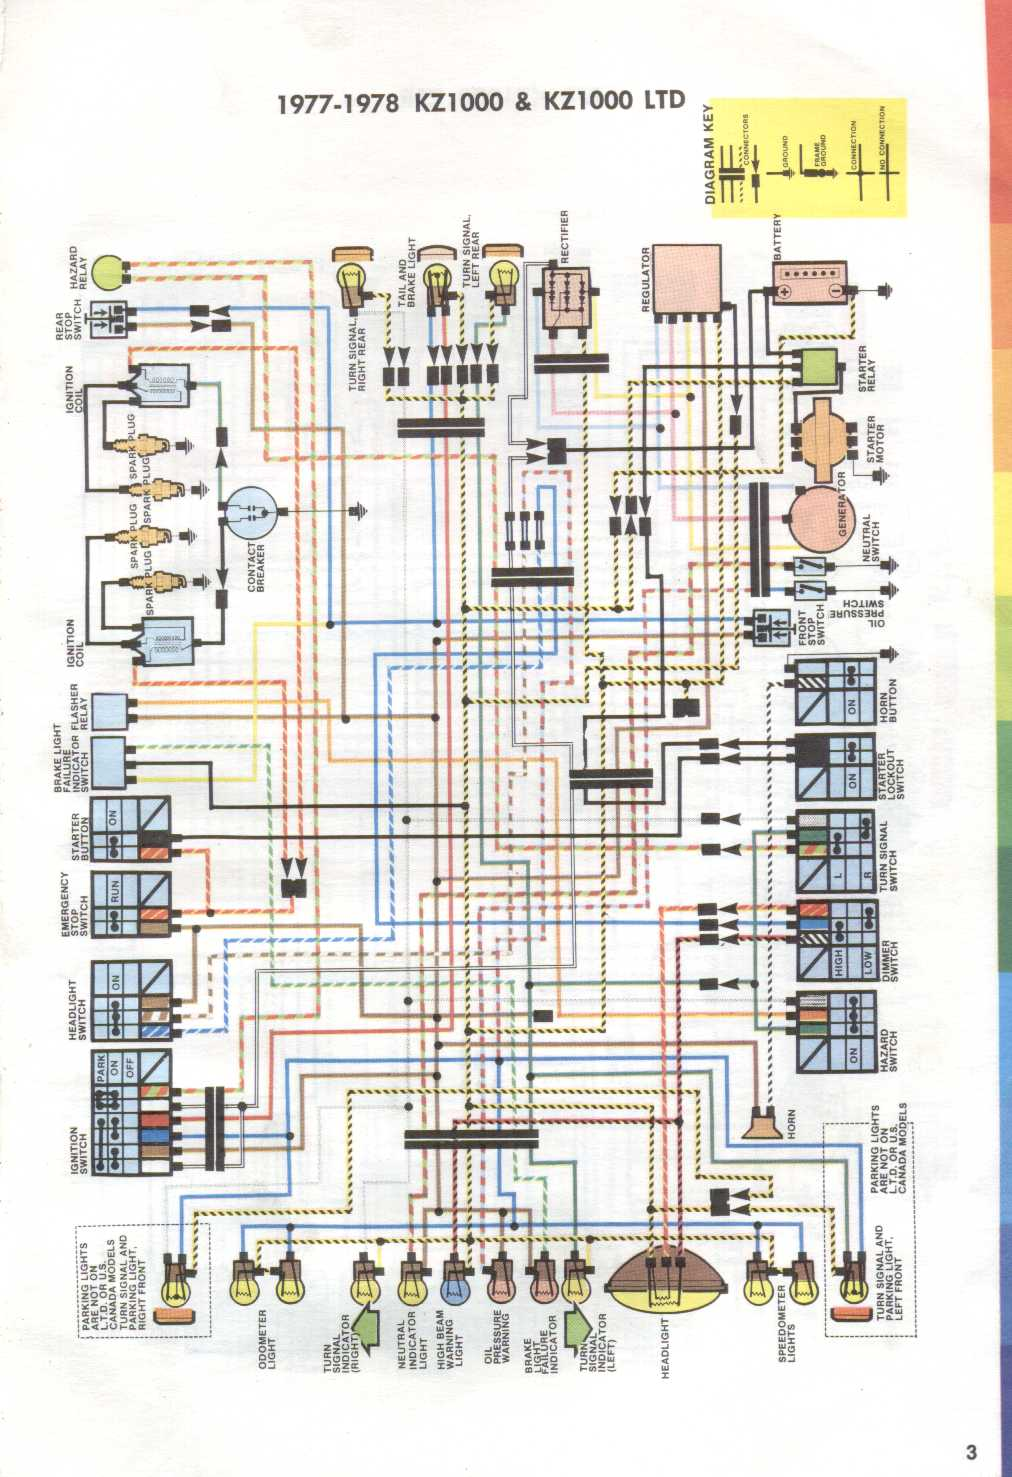 ... wiring diagram for 1977 1978 kawasaki kz1000 and kz1000ltd evan rh  cycles evanfell com 77 Yamaha